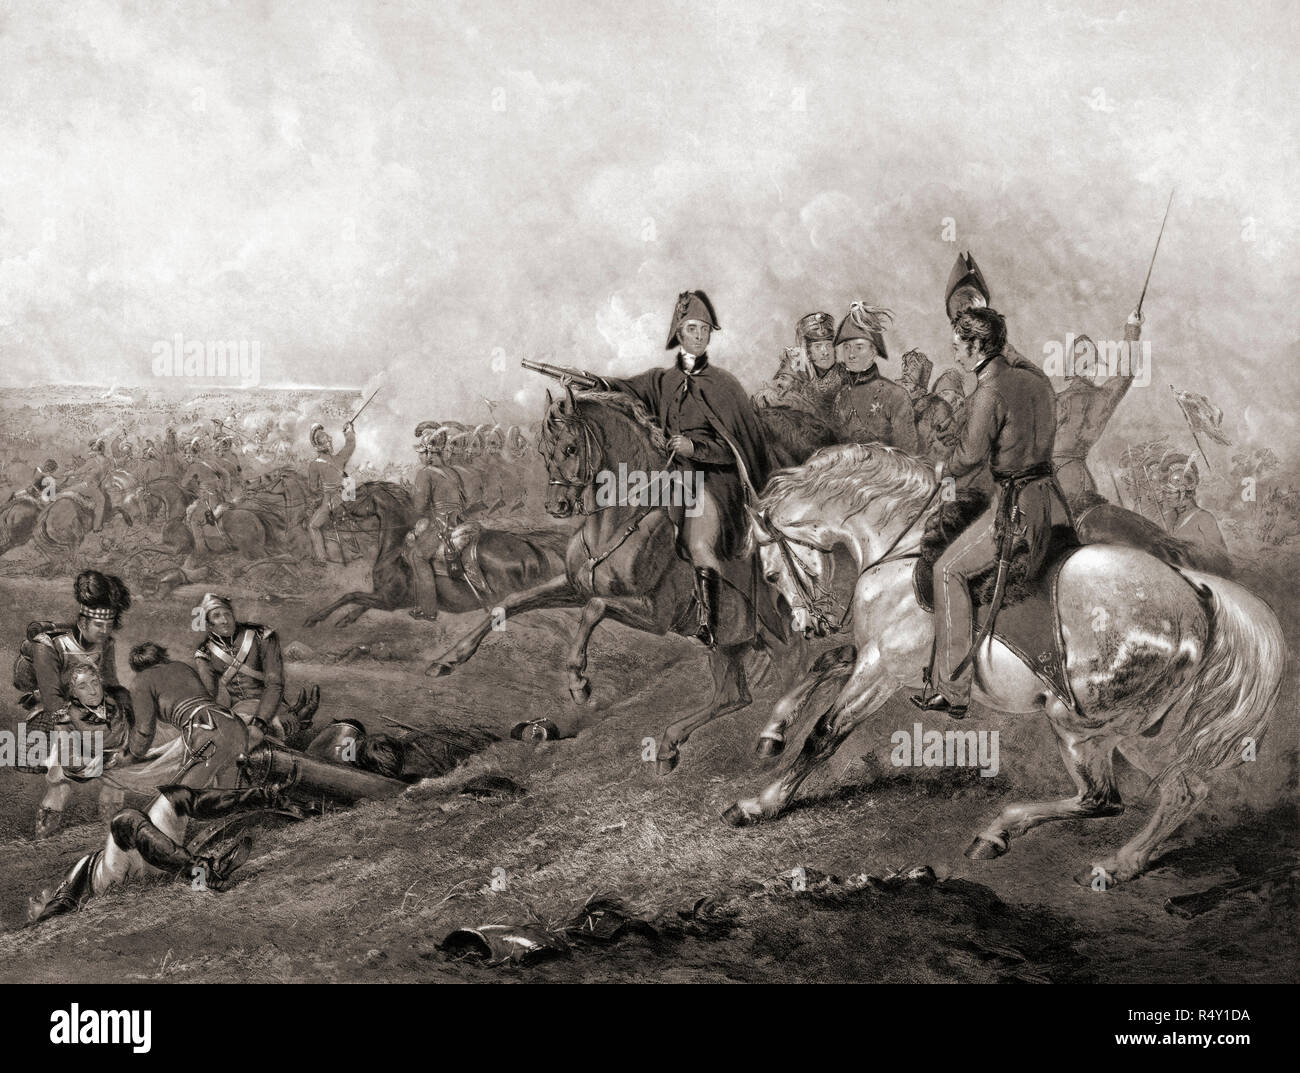 Wellington at Waterloo, June 18, 1815.  Engraving by Frederick Bromley after a work by Abraham Cooper. - Stock Image